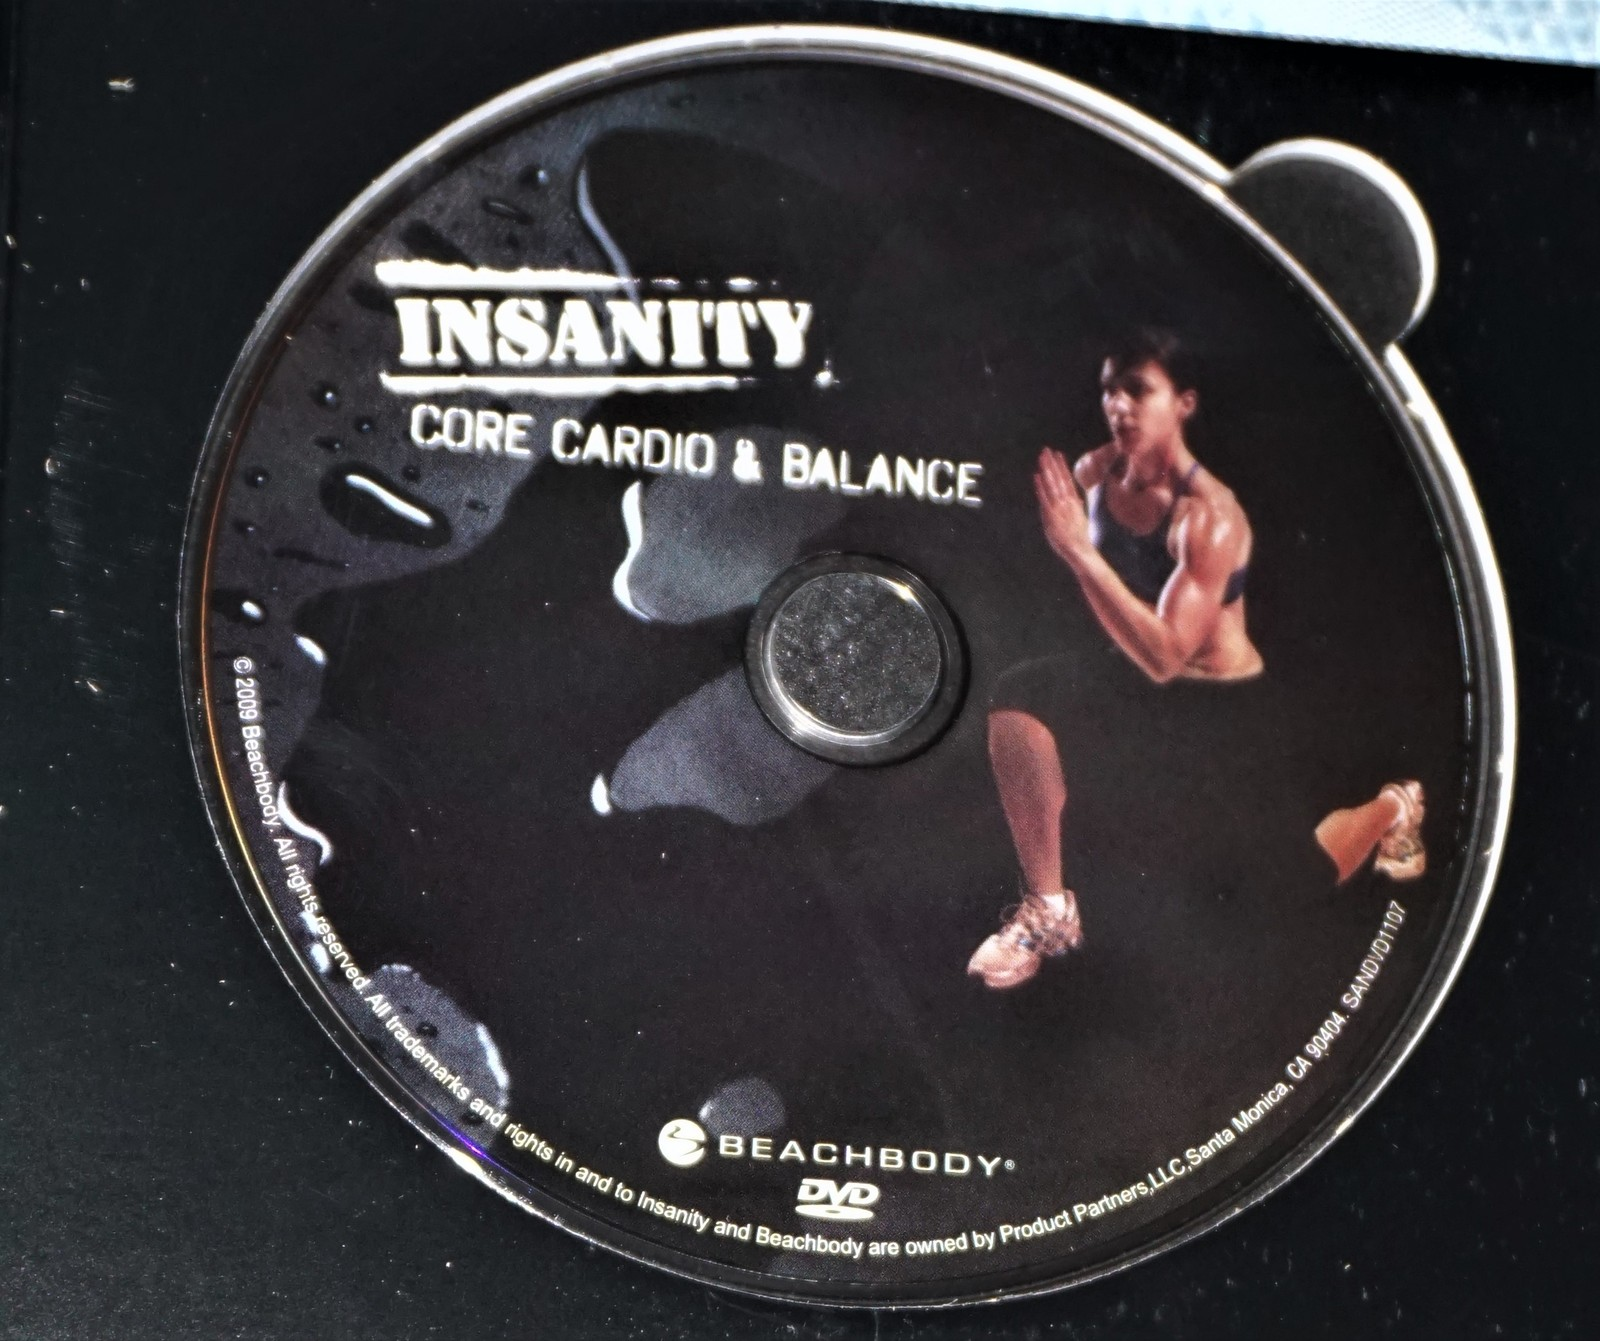 Beach Body Insanity Core Cardio & Balance Replacement DVD